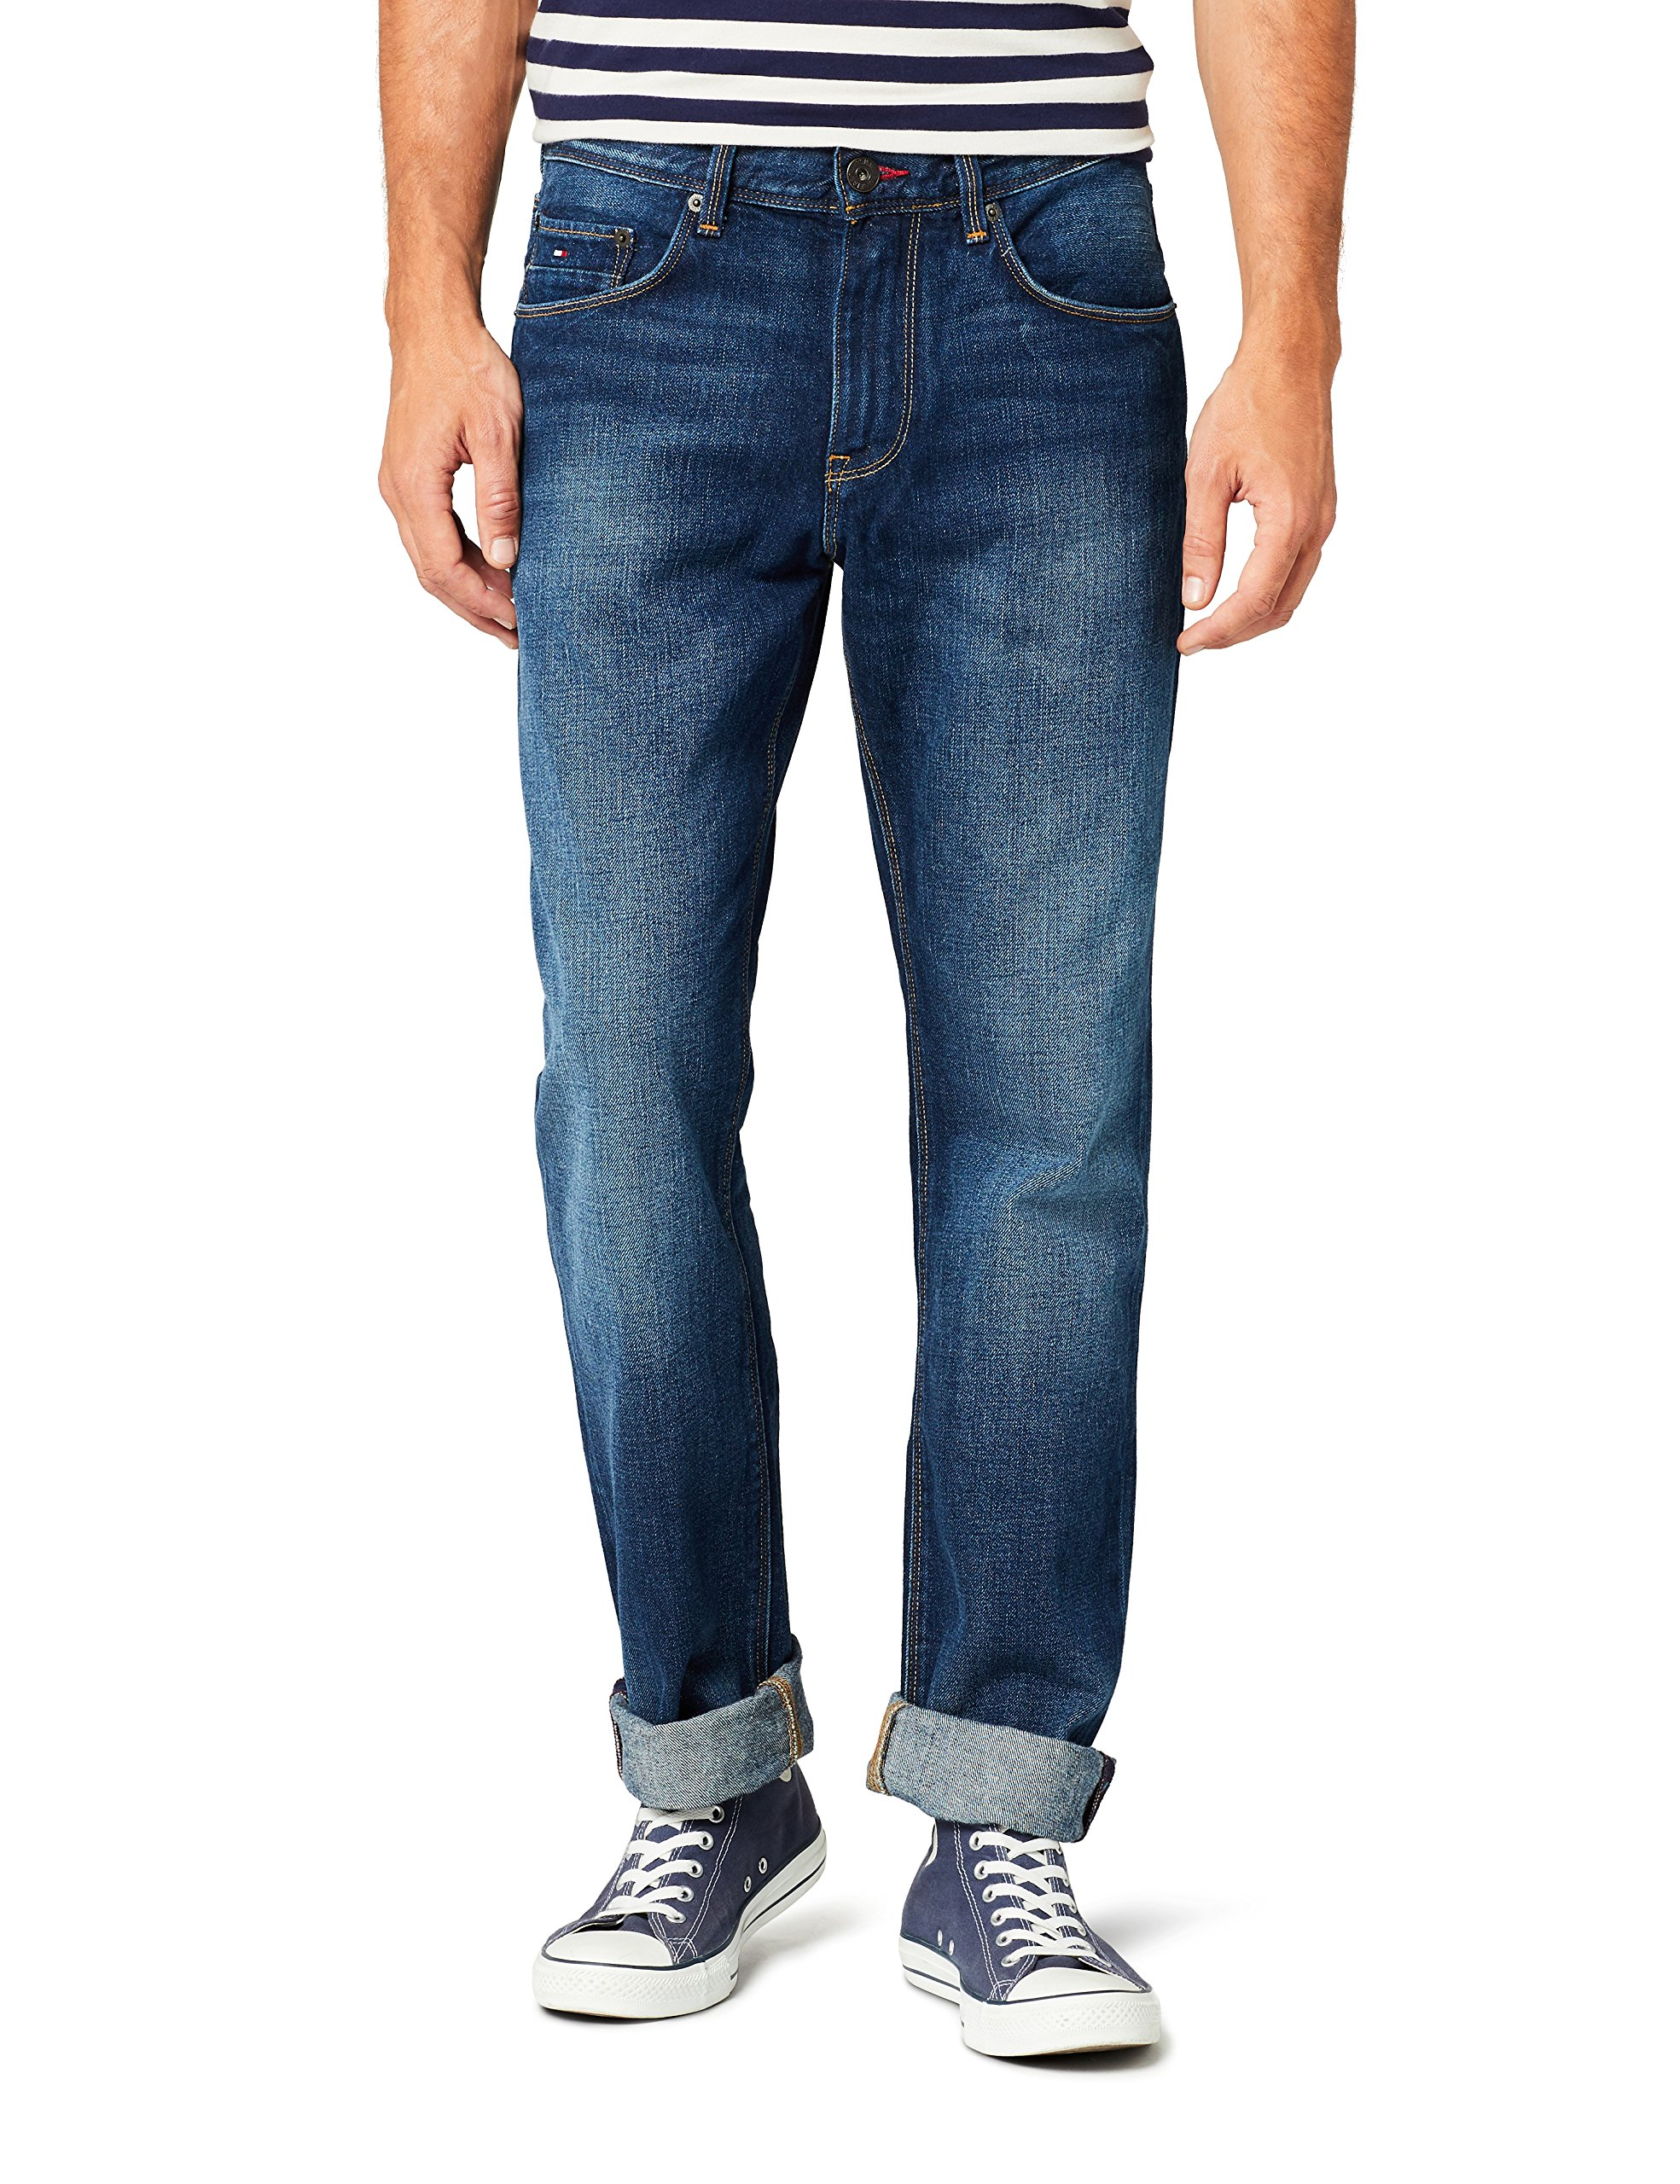 82dce0369d9870 Amazon.fr | Jeans homme